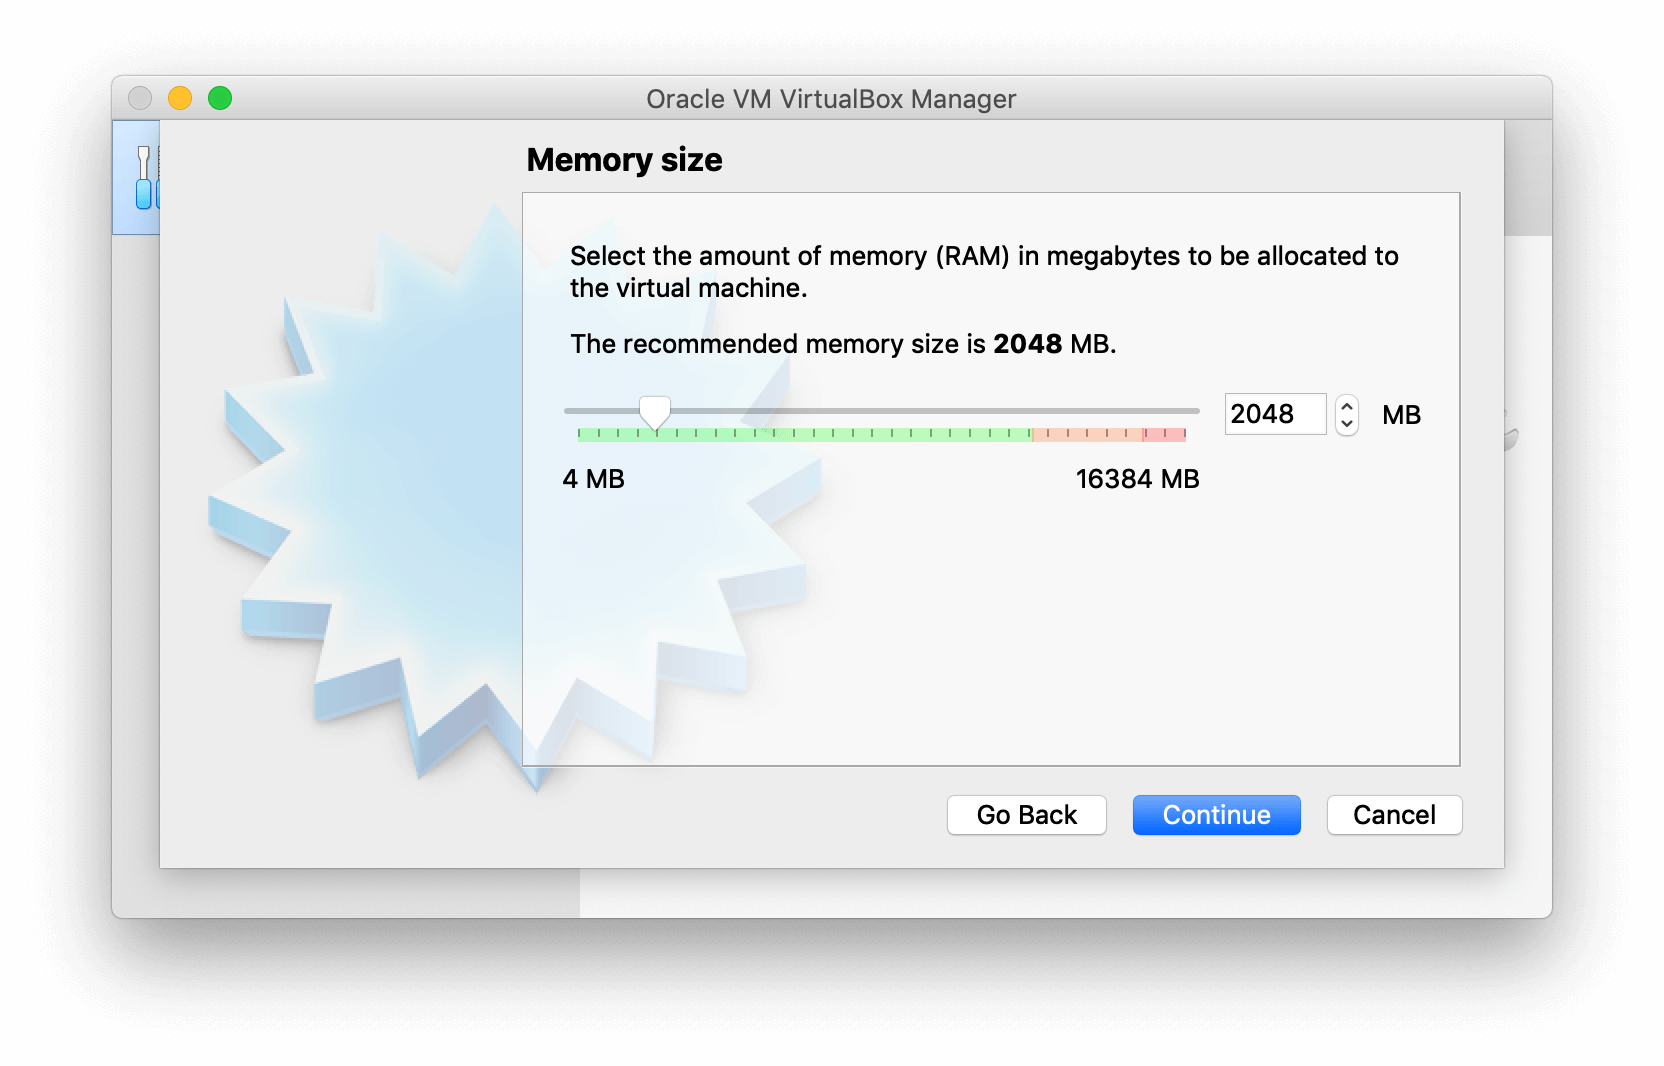 VirtualBox Manager asking to select memory size